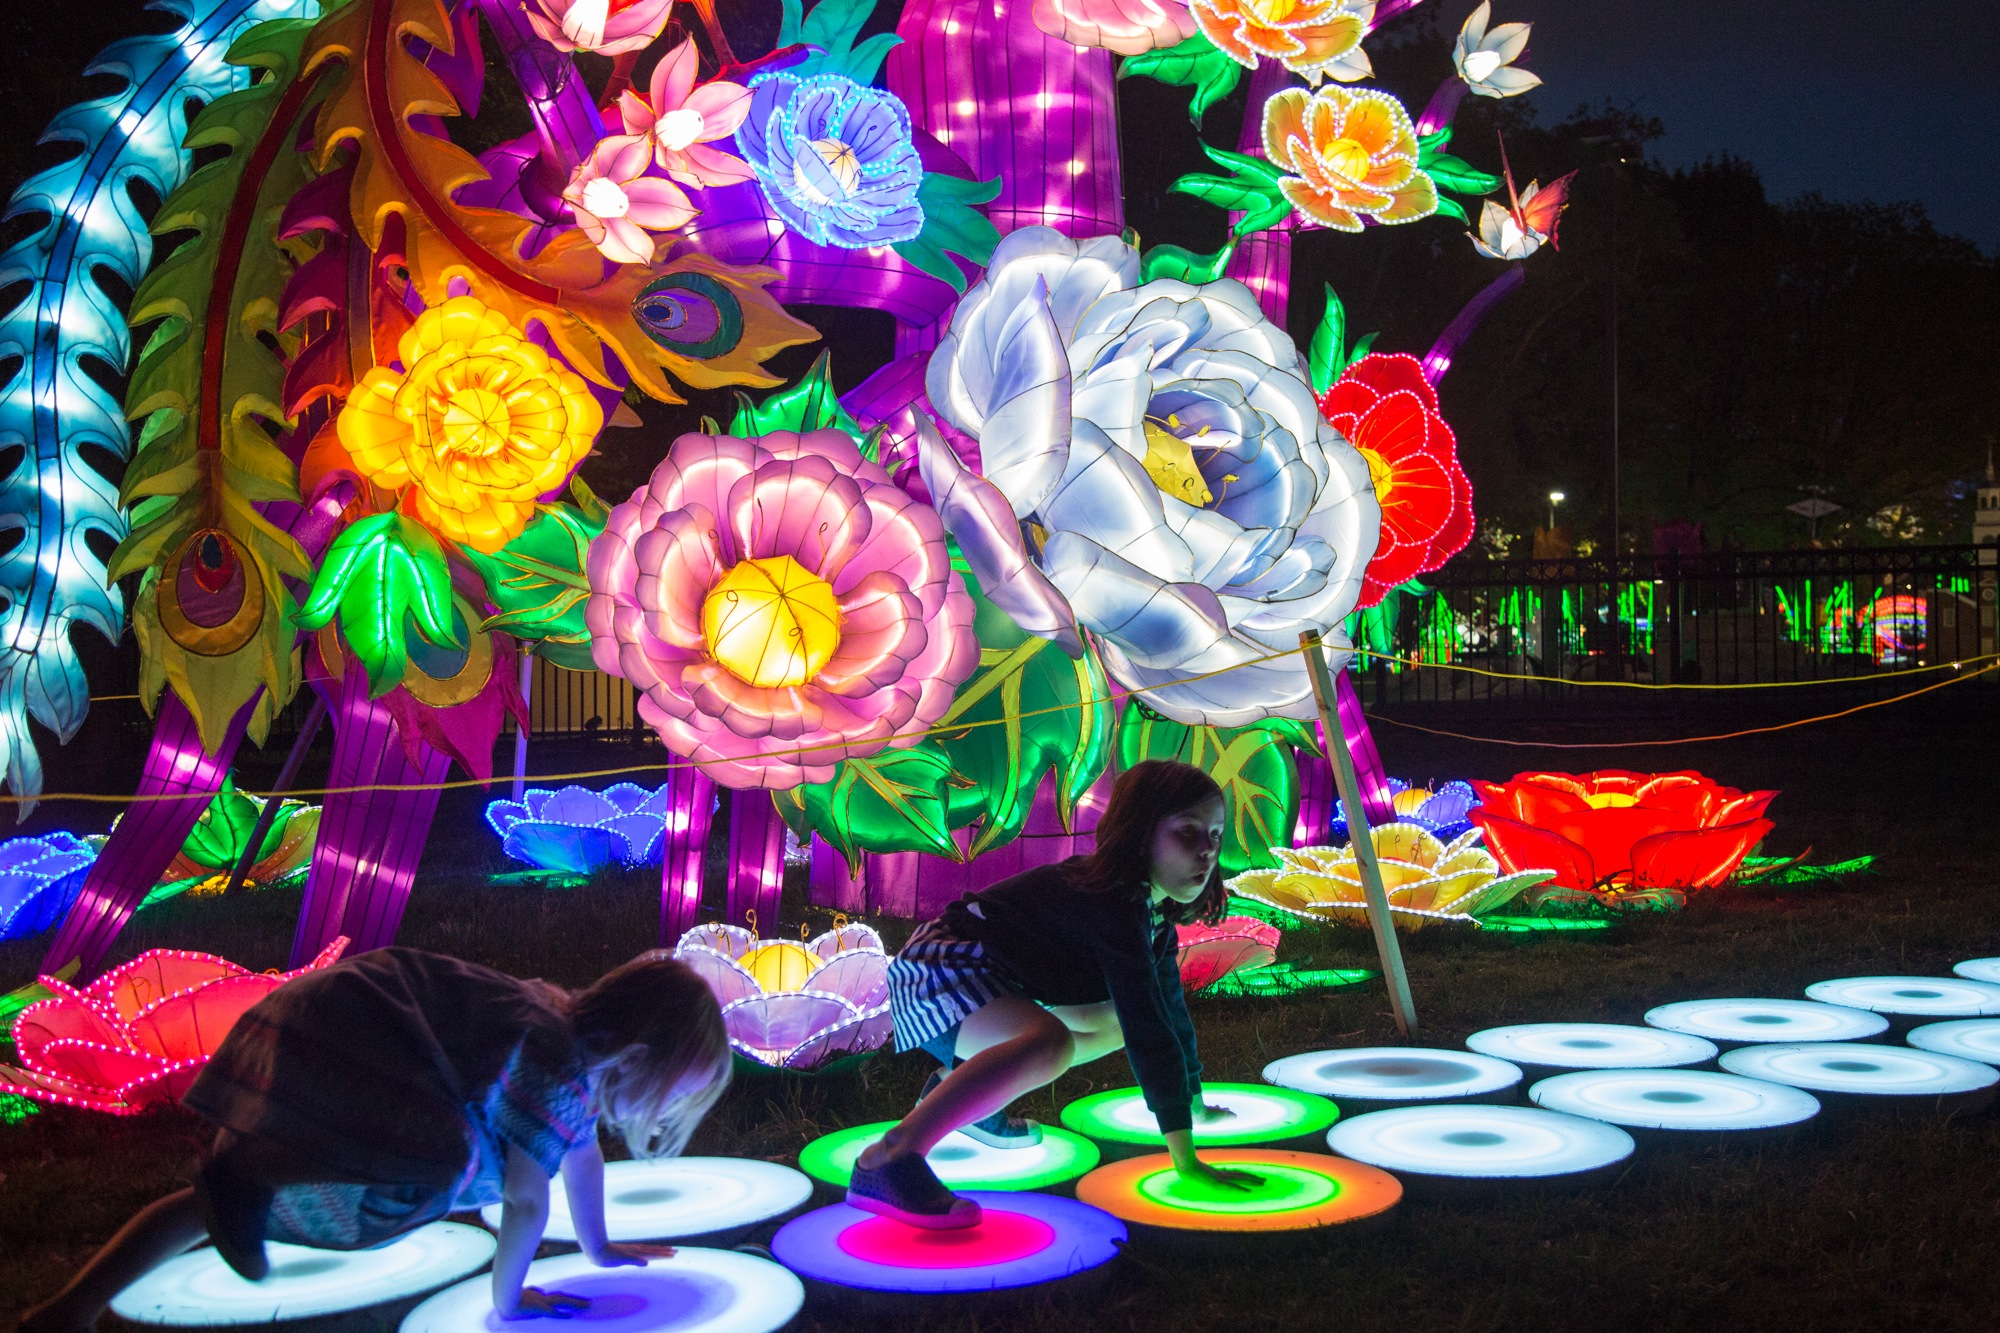 Philadelphia's Chinese Lantern Festival: Behind the scenes